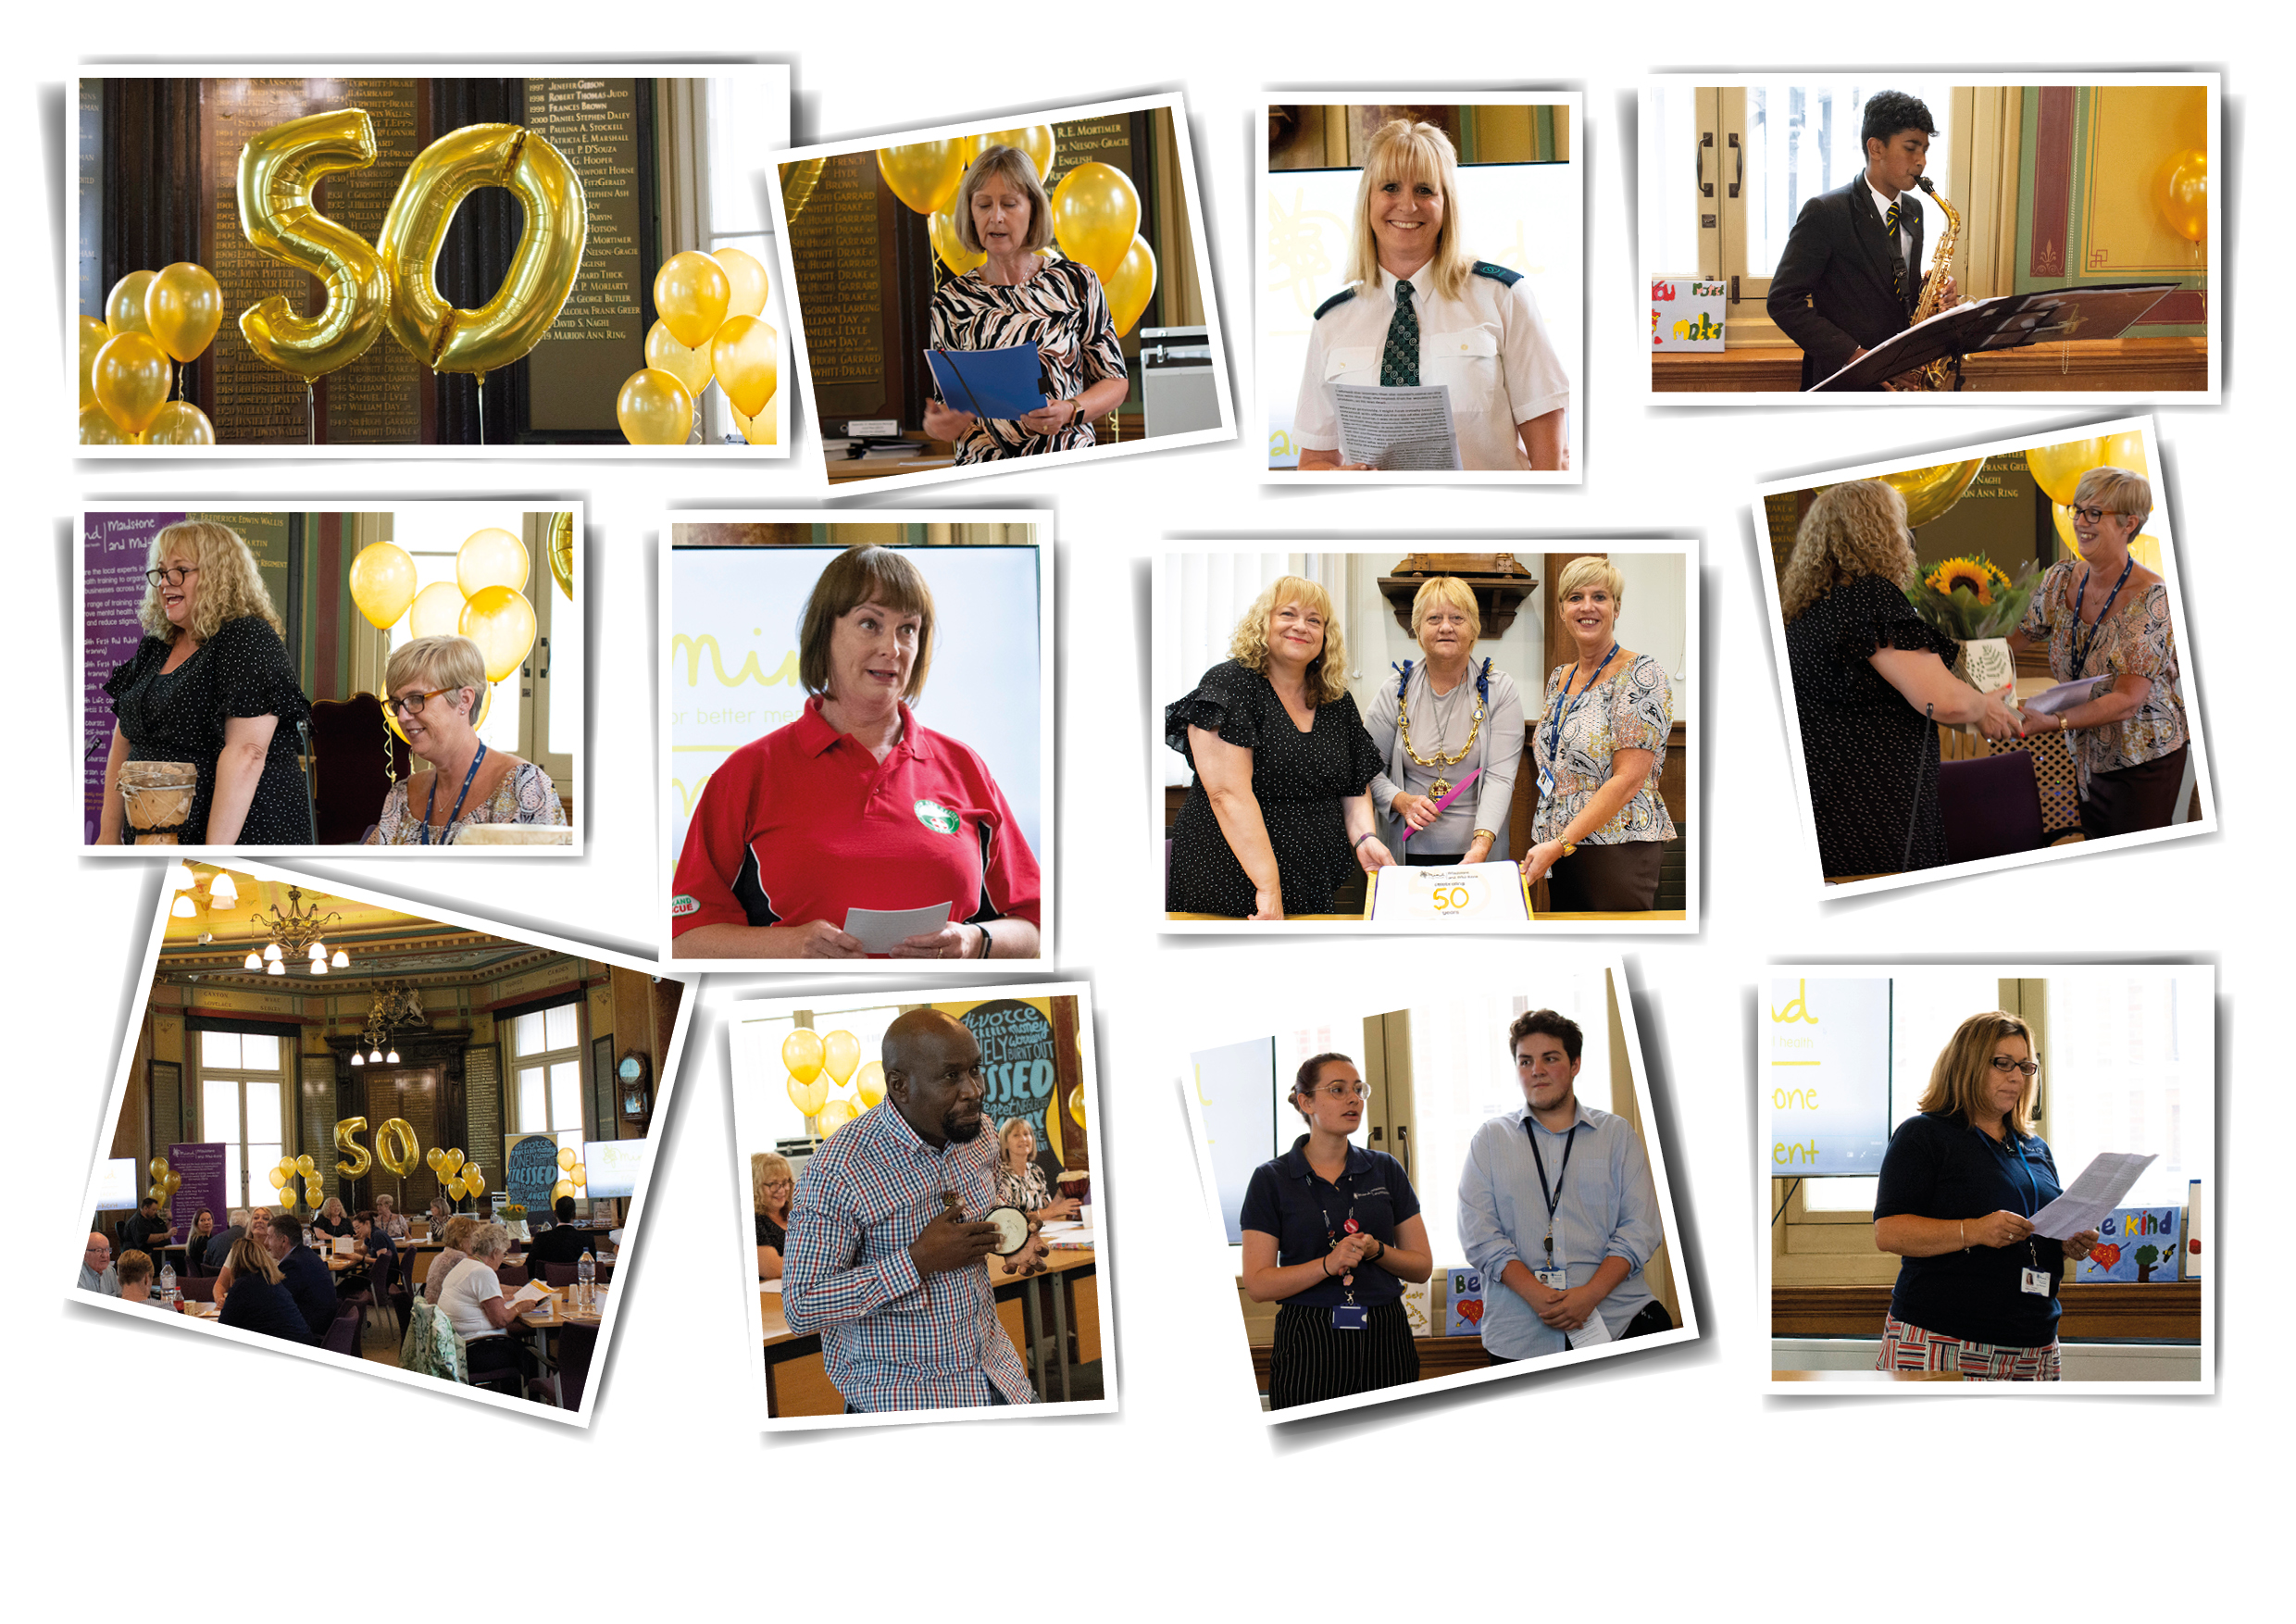 2019 AGM in Maidstone - Top left, 50th Anniversary Balloons. Picture of Hazel Webb, trustee and finance officer. Picture of Sarah, from Arriva, who spoke about how Suicide Prevention training had helped her. Picture of Kamren, from MGS, who played music for us. Picture of Sue and Julie at head table. Picture of Paula, from Kent Search and Rescue. Picture of Sue Grigg, Maidstone Mayor and Julie Blackmore. Picture of Julie and Sue exchanging flowers. Picture of room full for the AGM. Picture of Lucky playing music. Picture of Nicole and Tom. Picture of Suzanne.